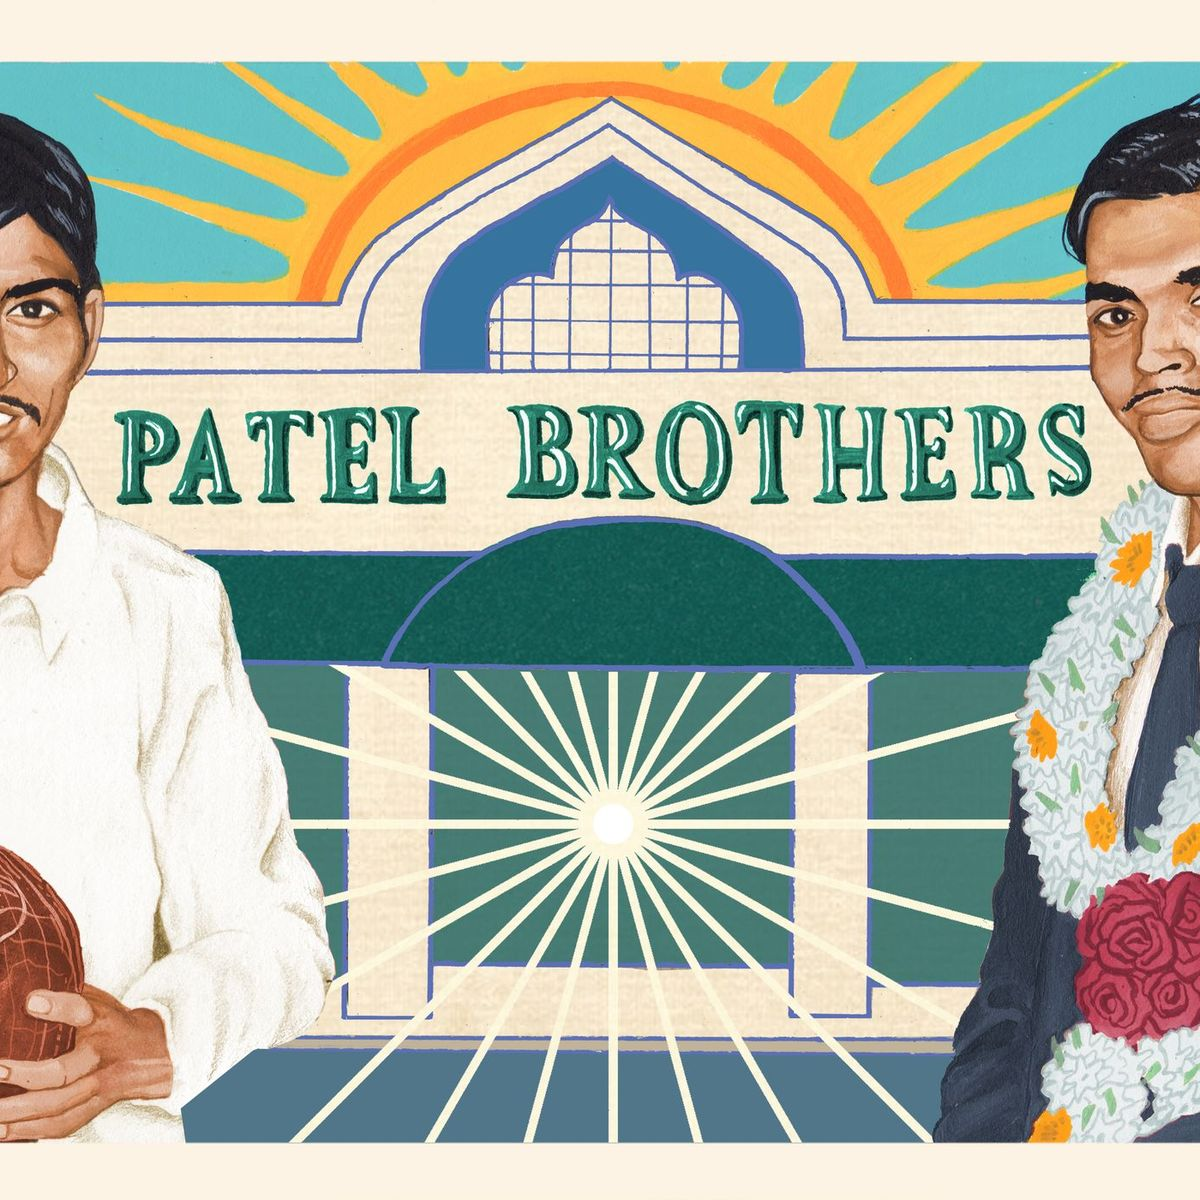 The Story of Patel Brothers, the Biggest Indian Grocery